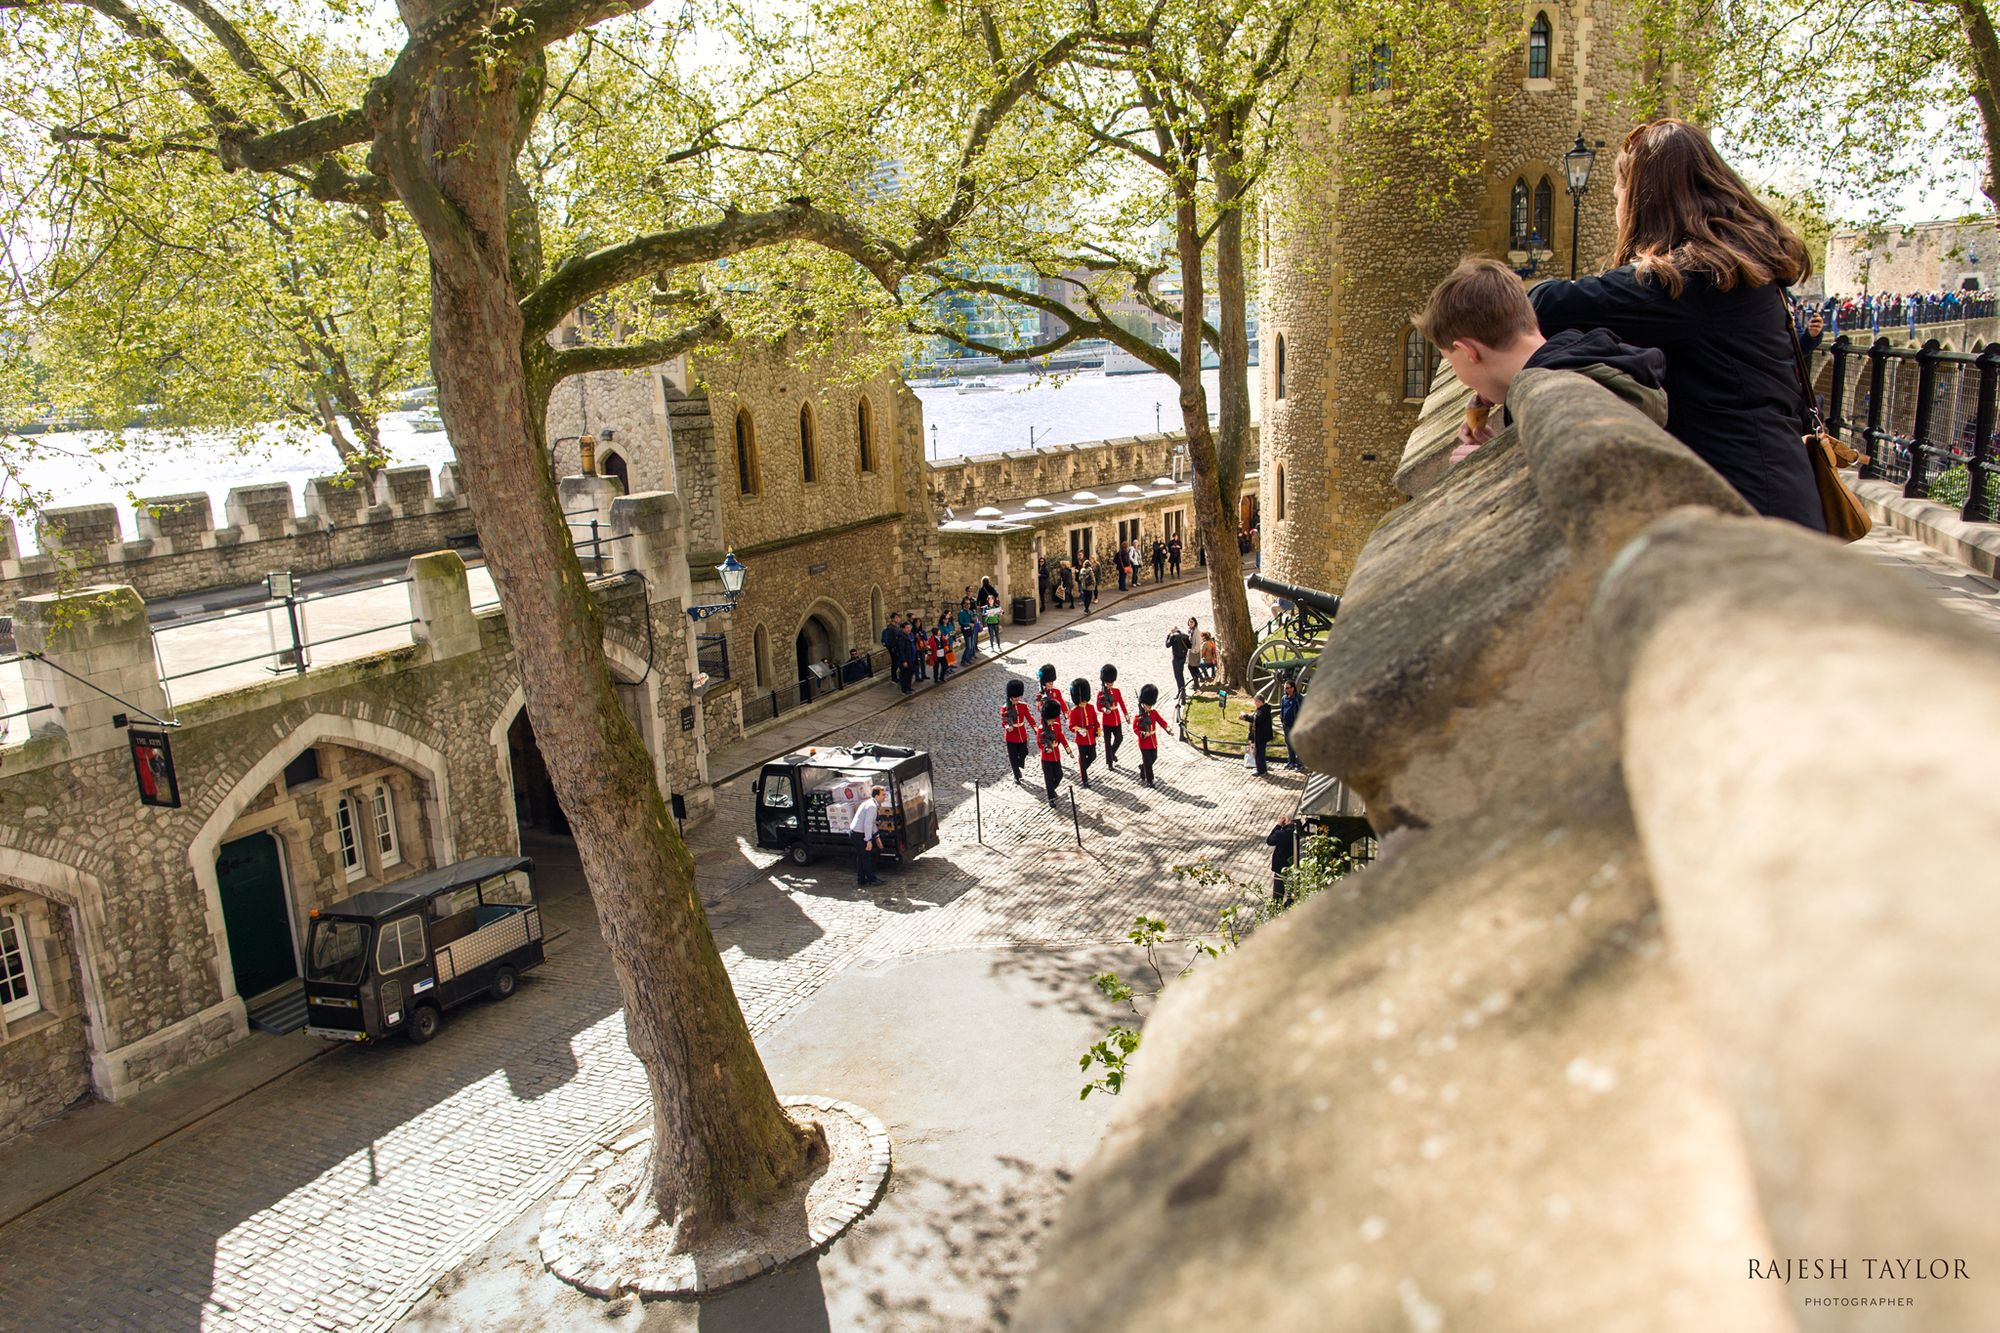 (L) St Thomas Tower (C) Royal Guards (R) Lanthorn Tower inside The Tower of London ©Rajesh Taylor